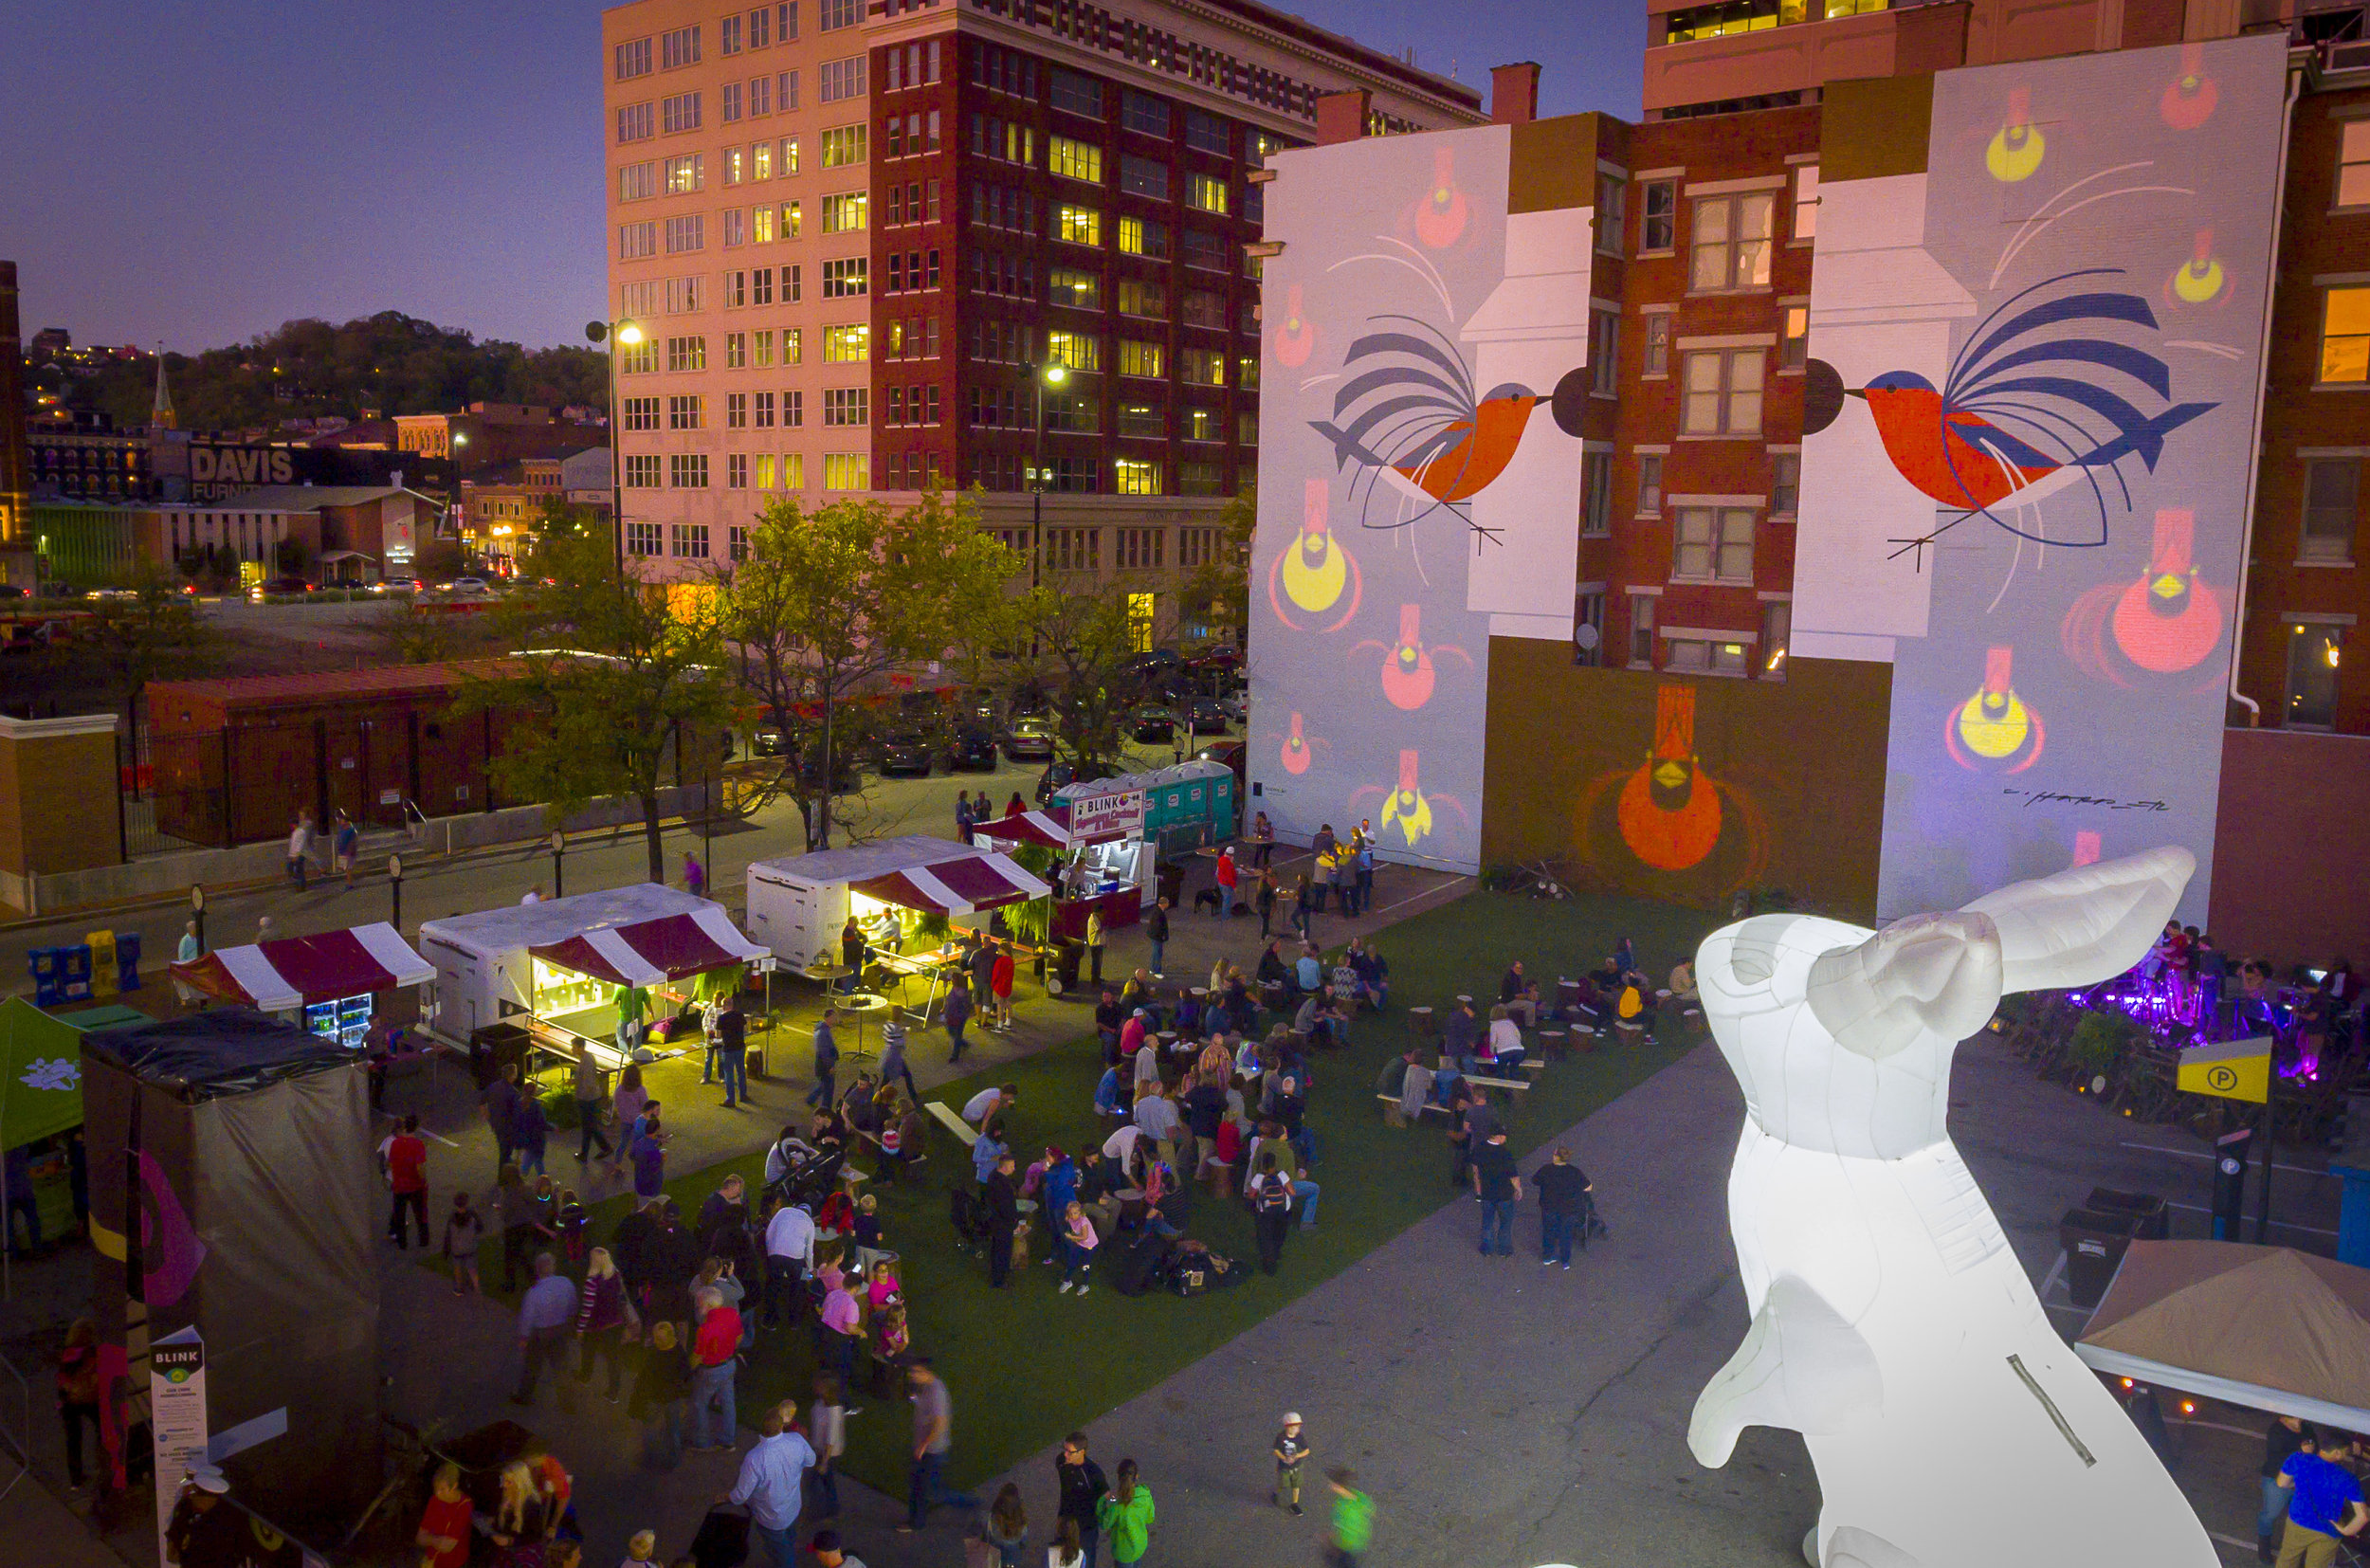 Aerial View of our Installation - Alongside Charlie Harper, Amanda Parer and We Have Become Vikings